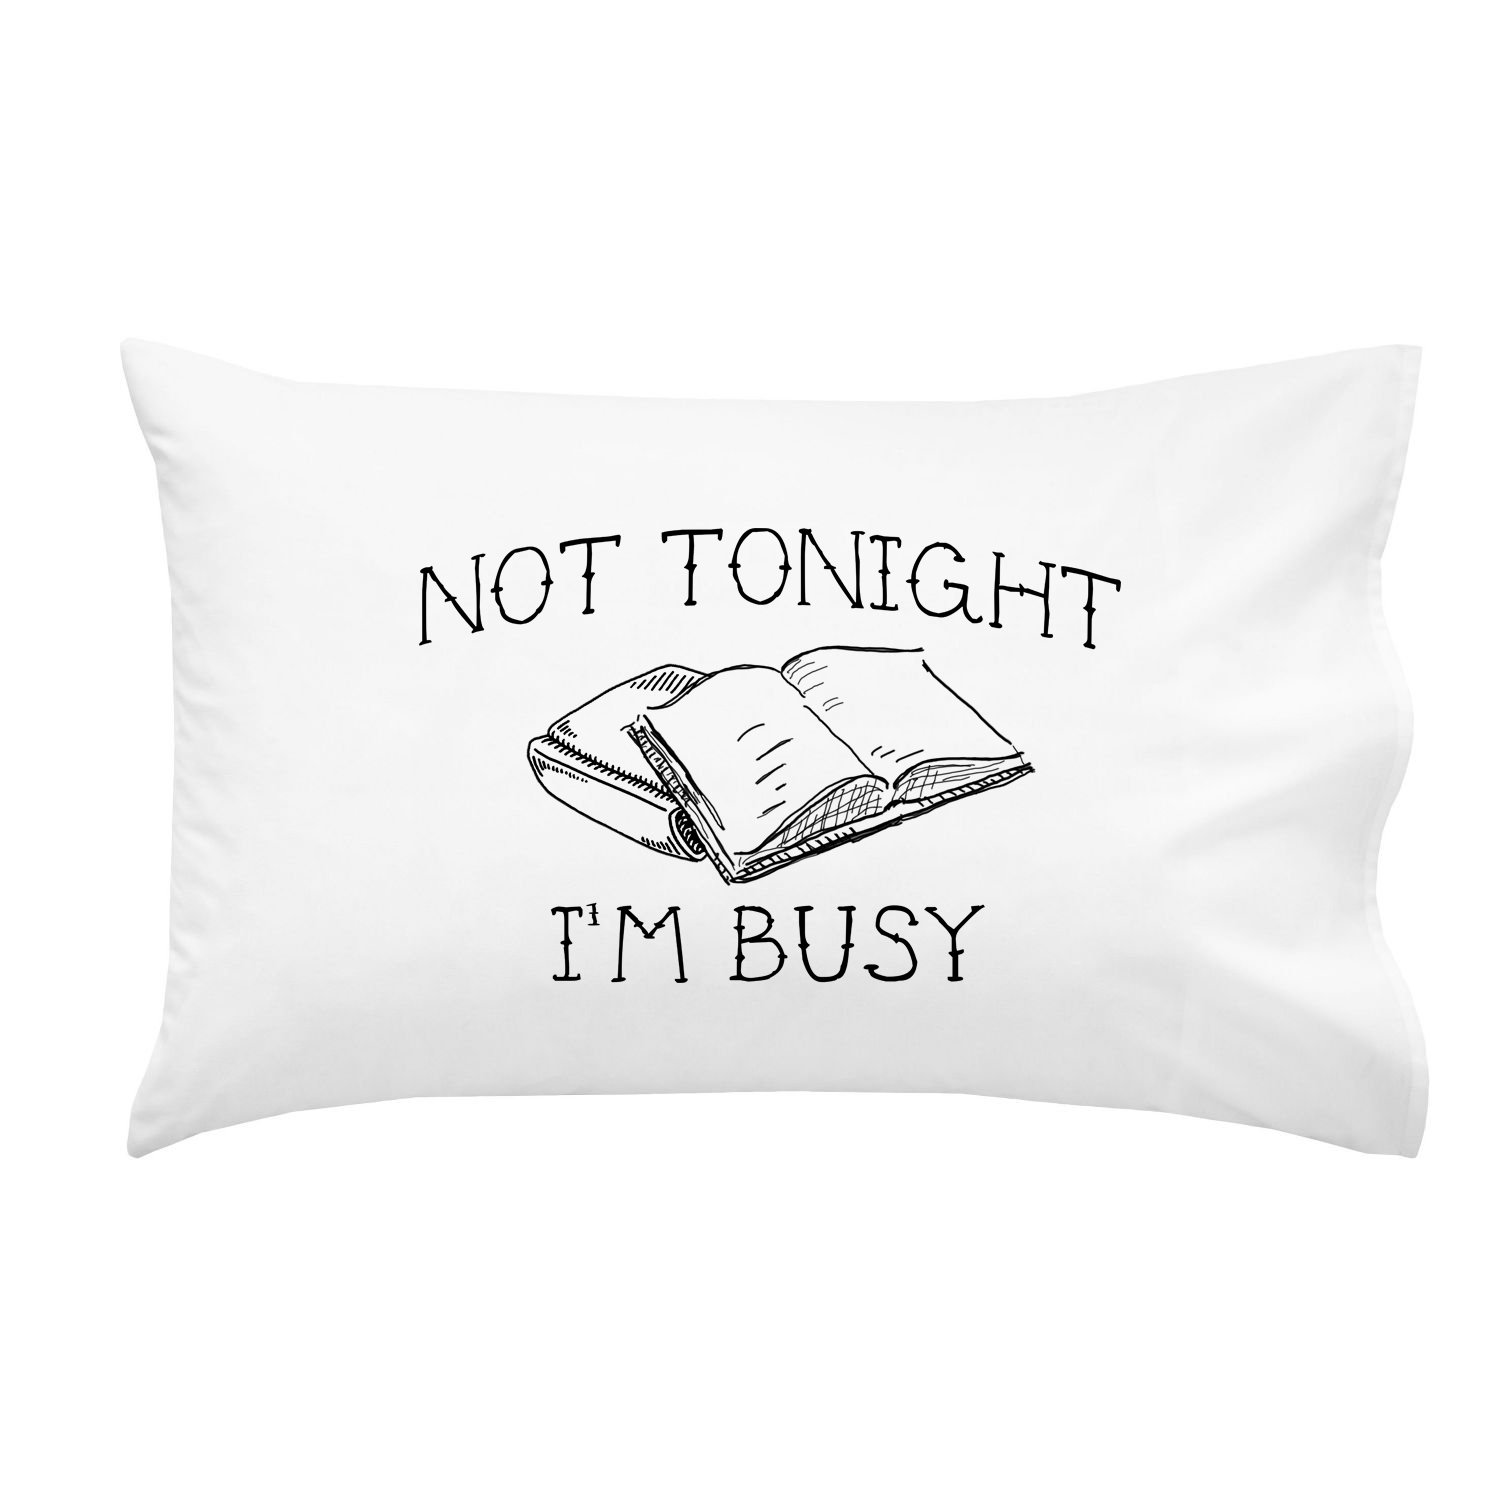 Oh, Susannah Not Tonight Im Busy Pillowcase - Standard Size Pillowcase (1 20x30 inch, Black) College Gifts for Girls